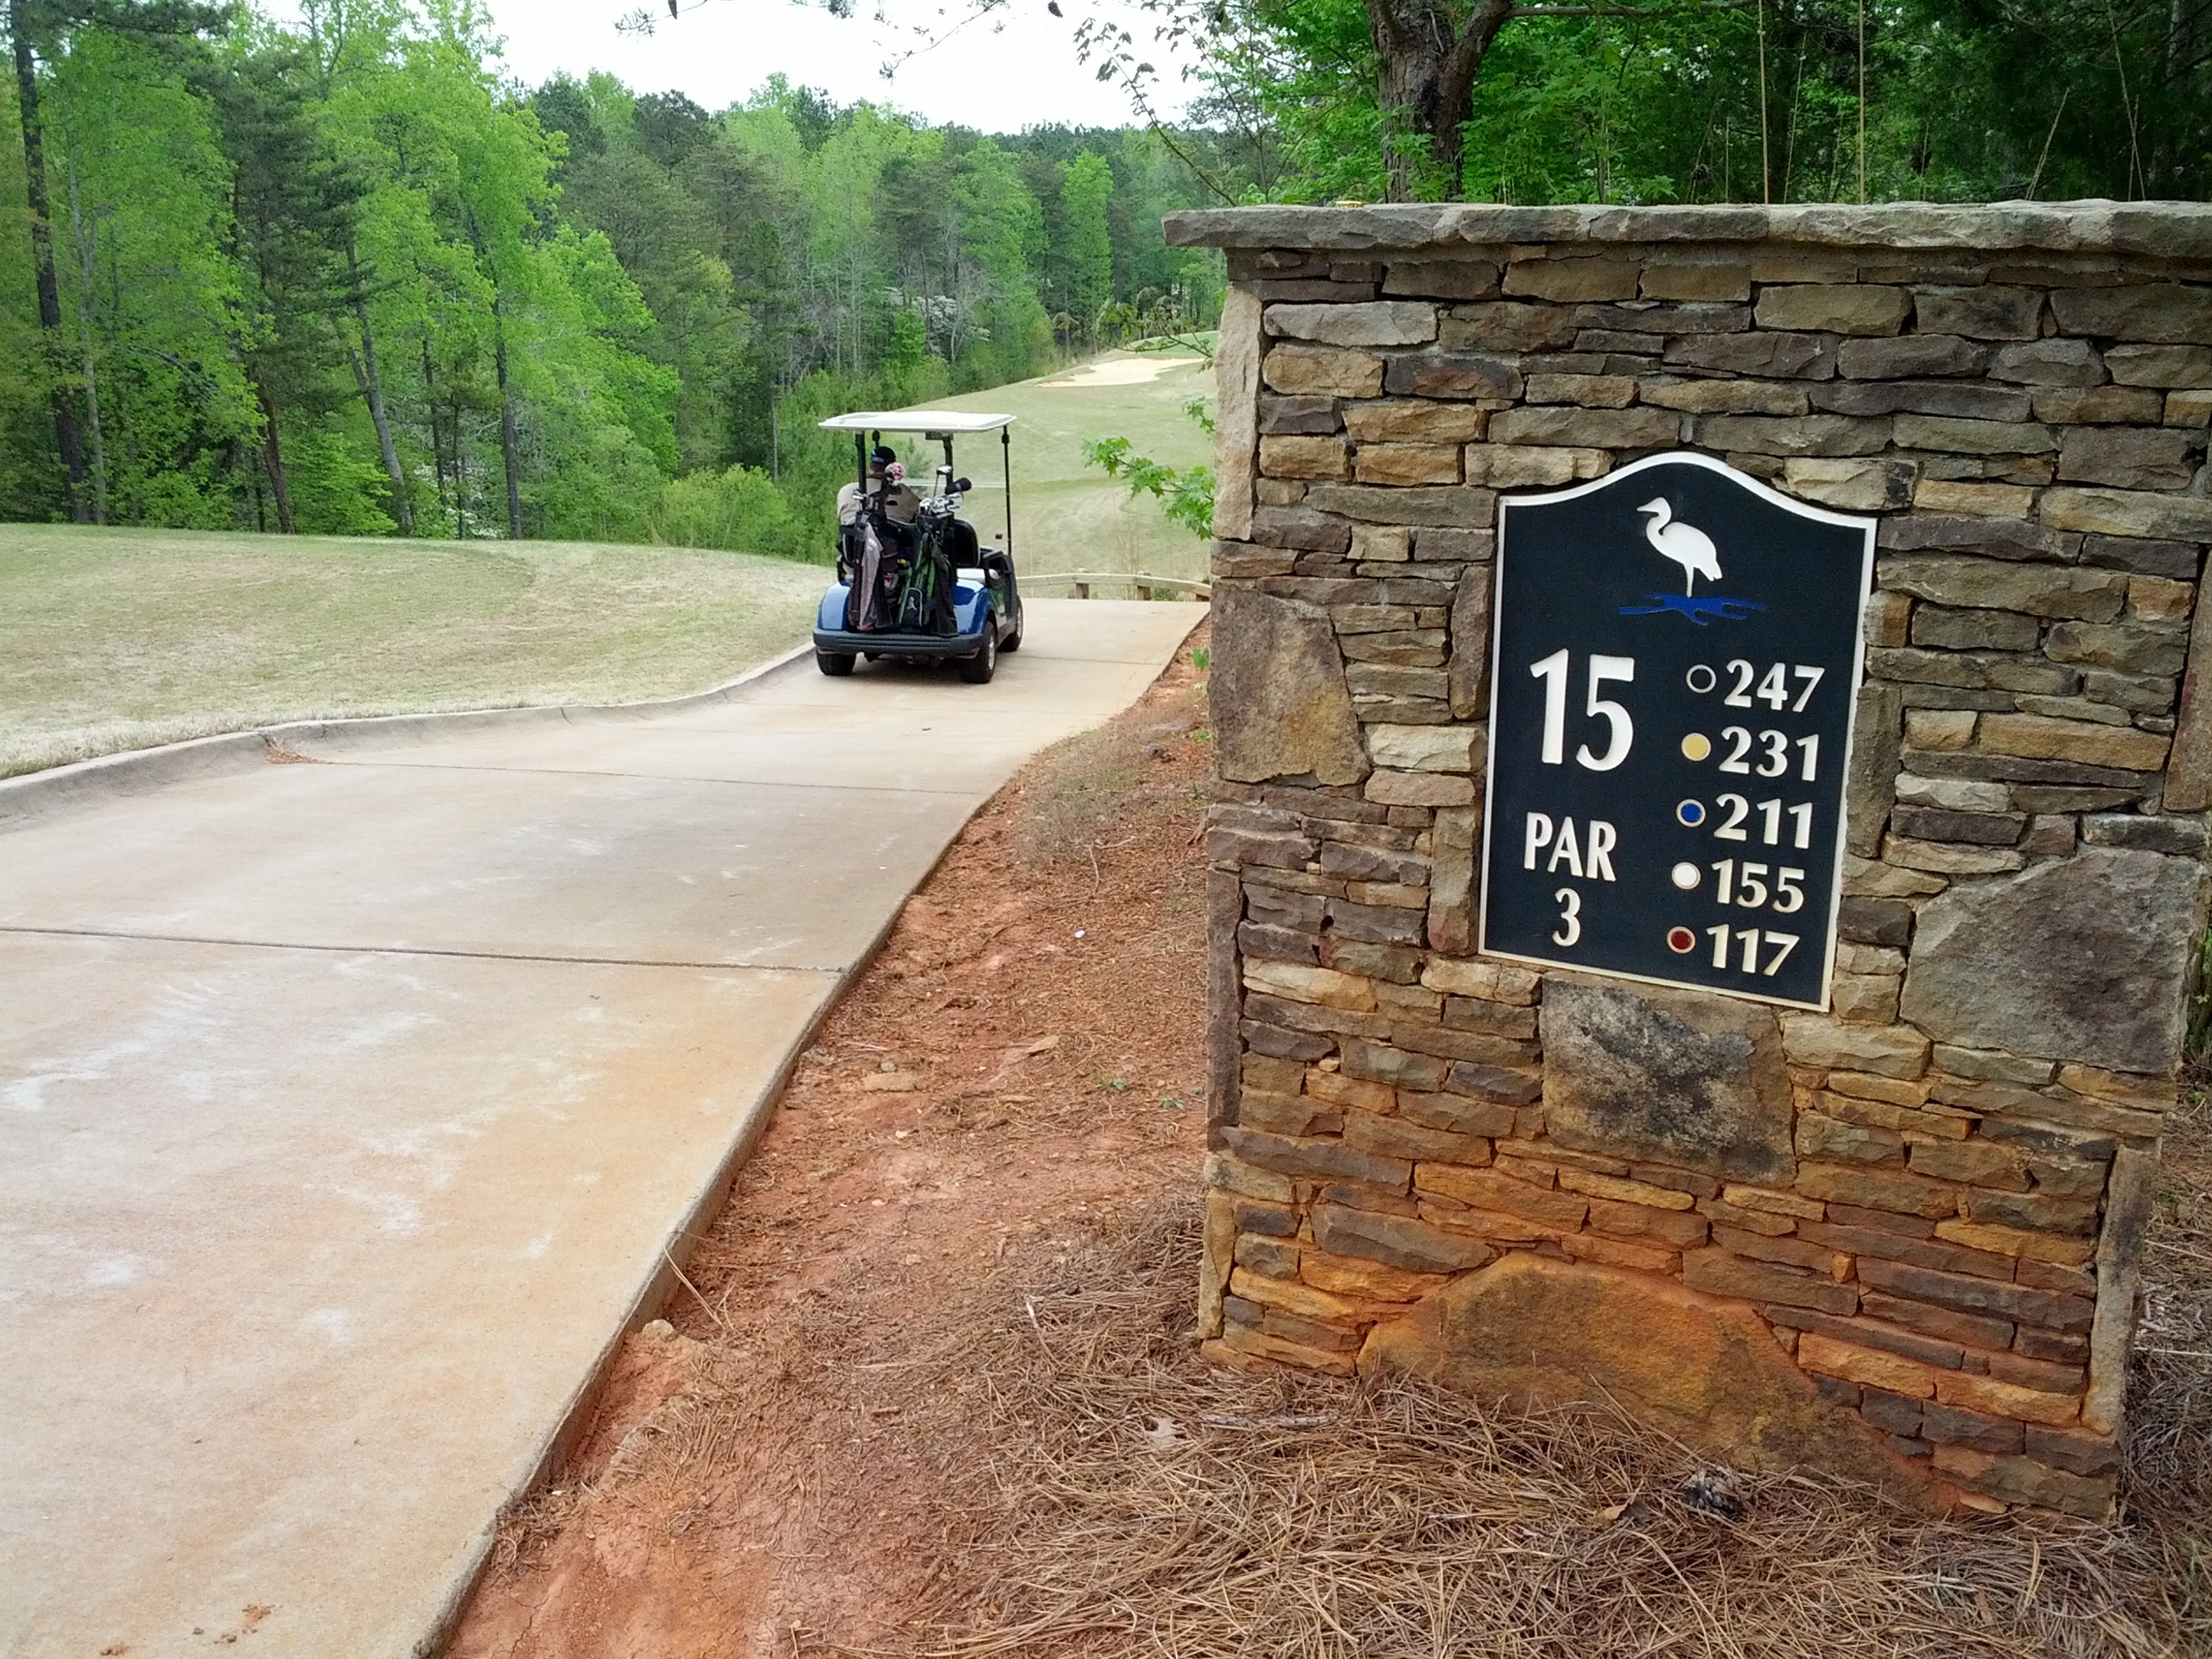 The beautiful 15th hole at Edgewater Golf Club in Lancaster, S.C. Lots of steps recorded...even with a cart.